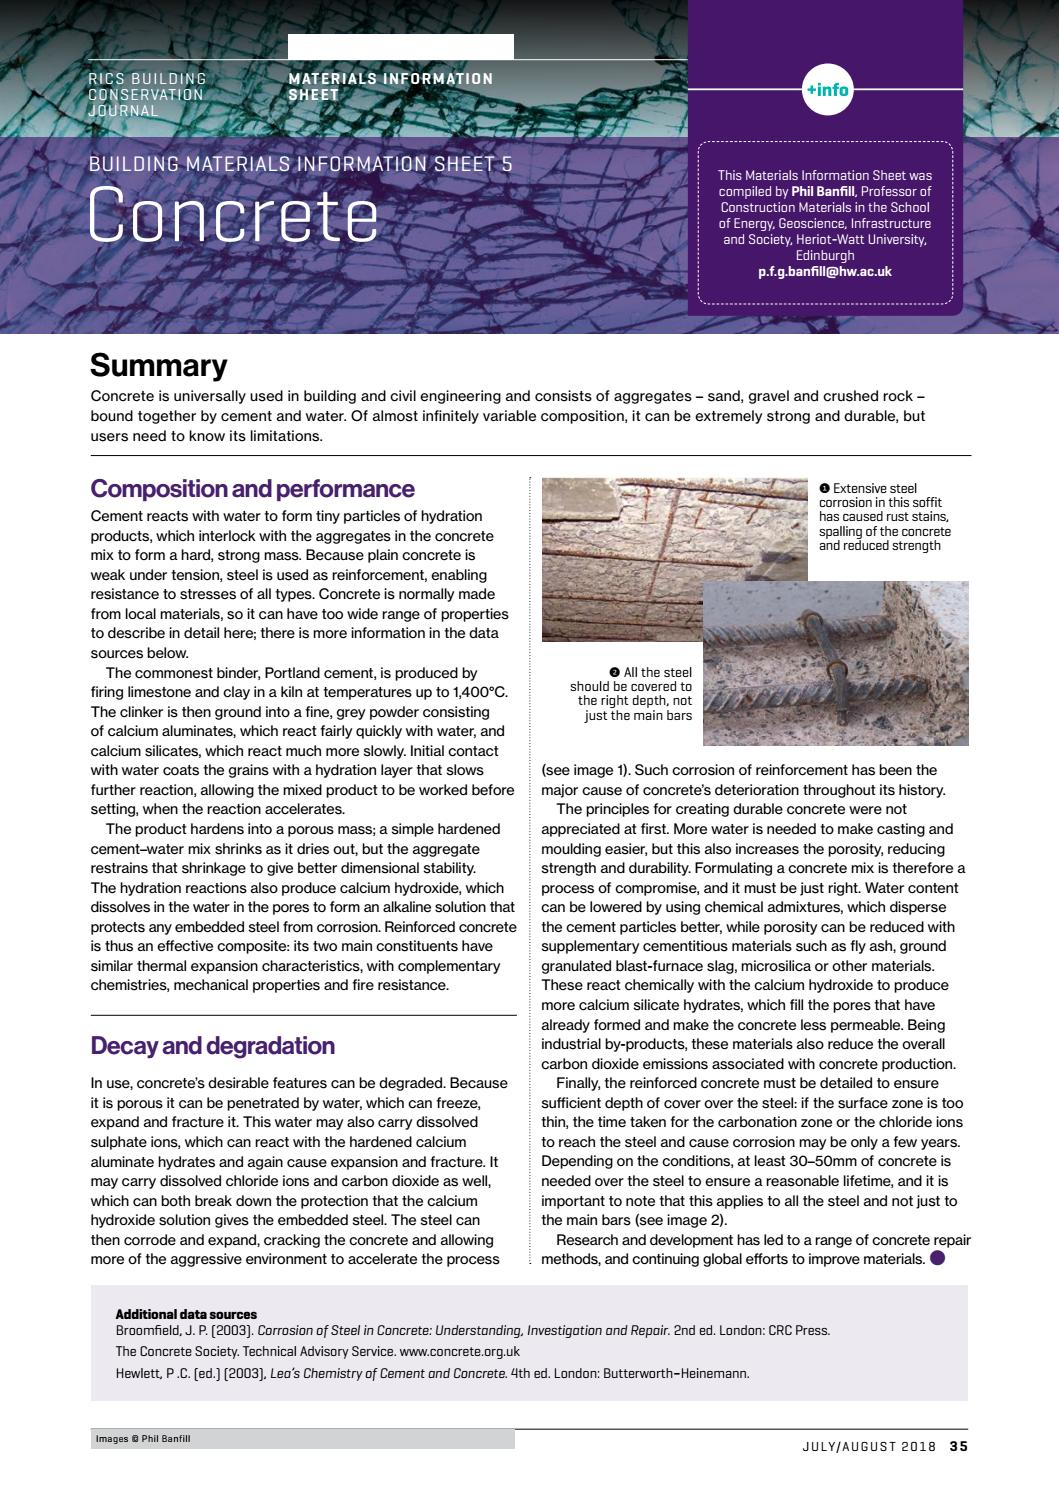 Building Surveying Journal July–August 2018 by RICS - issuu